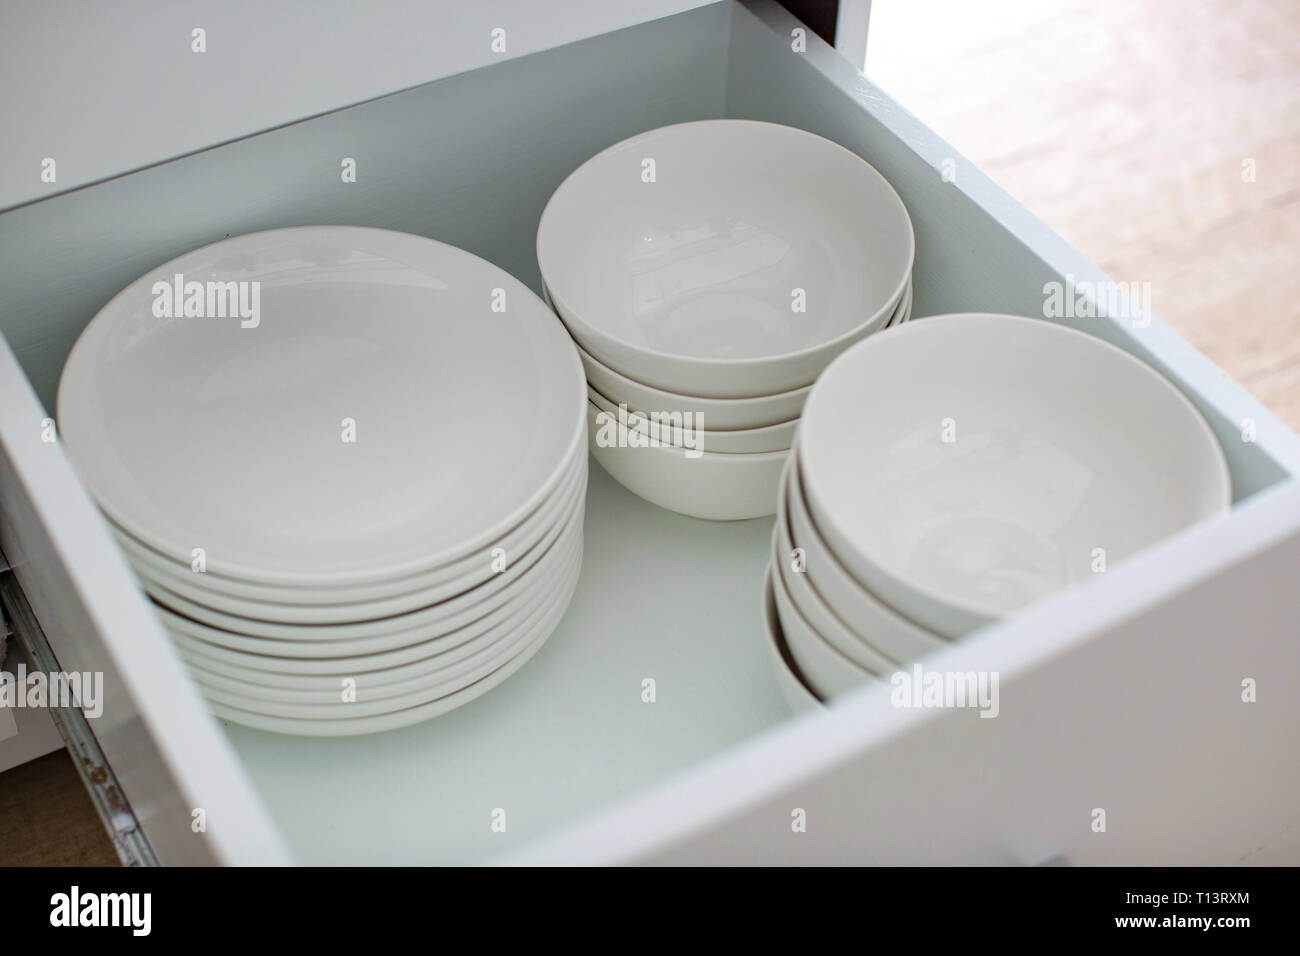 Opened drawer with white plates and bowls - Stock Image